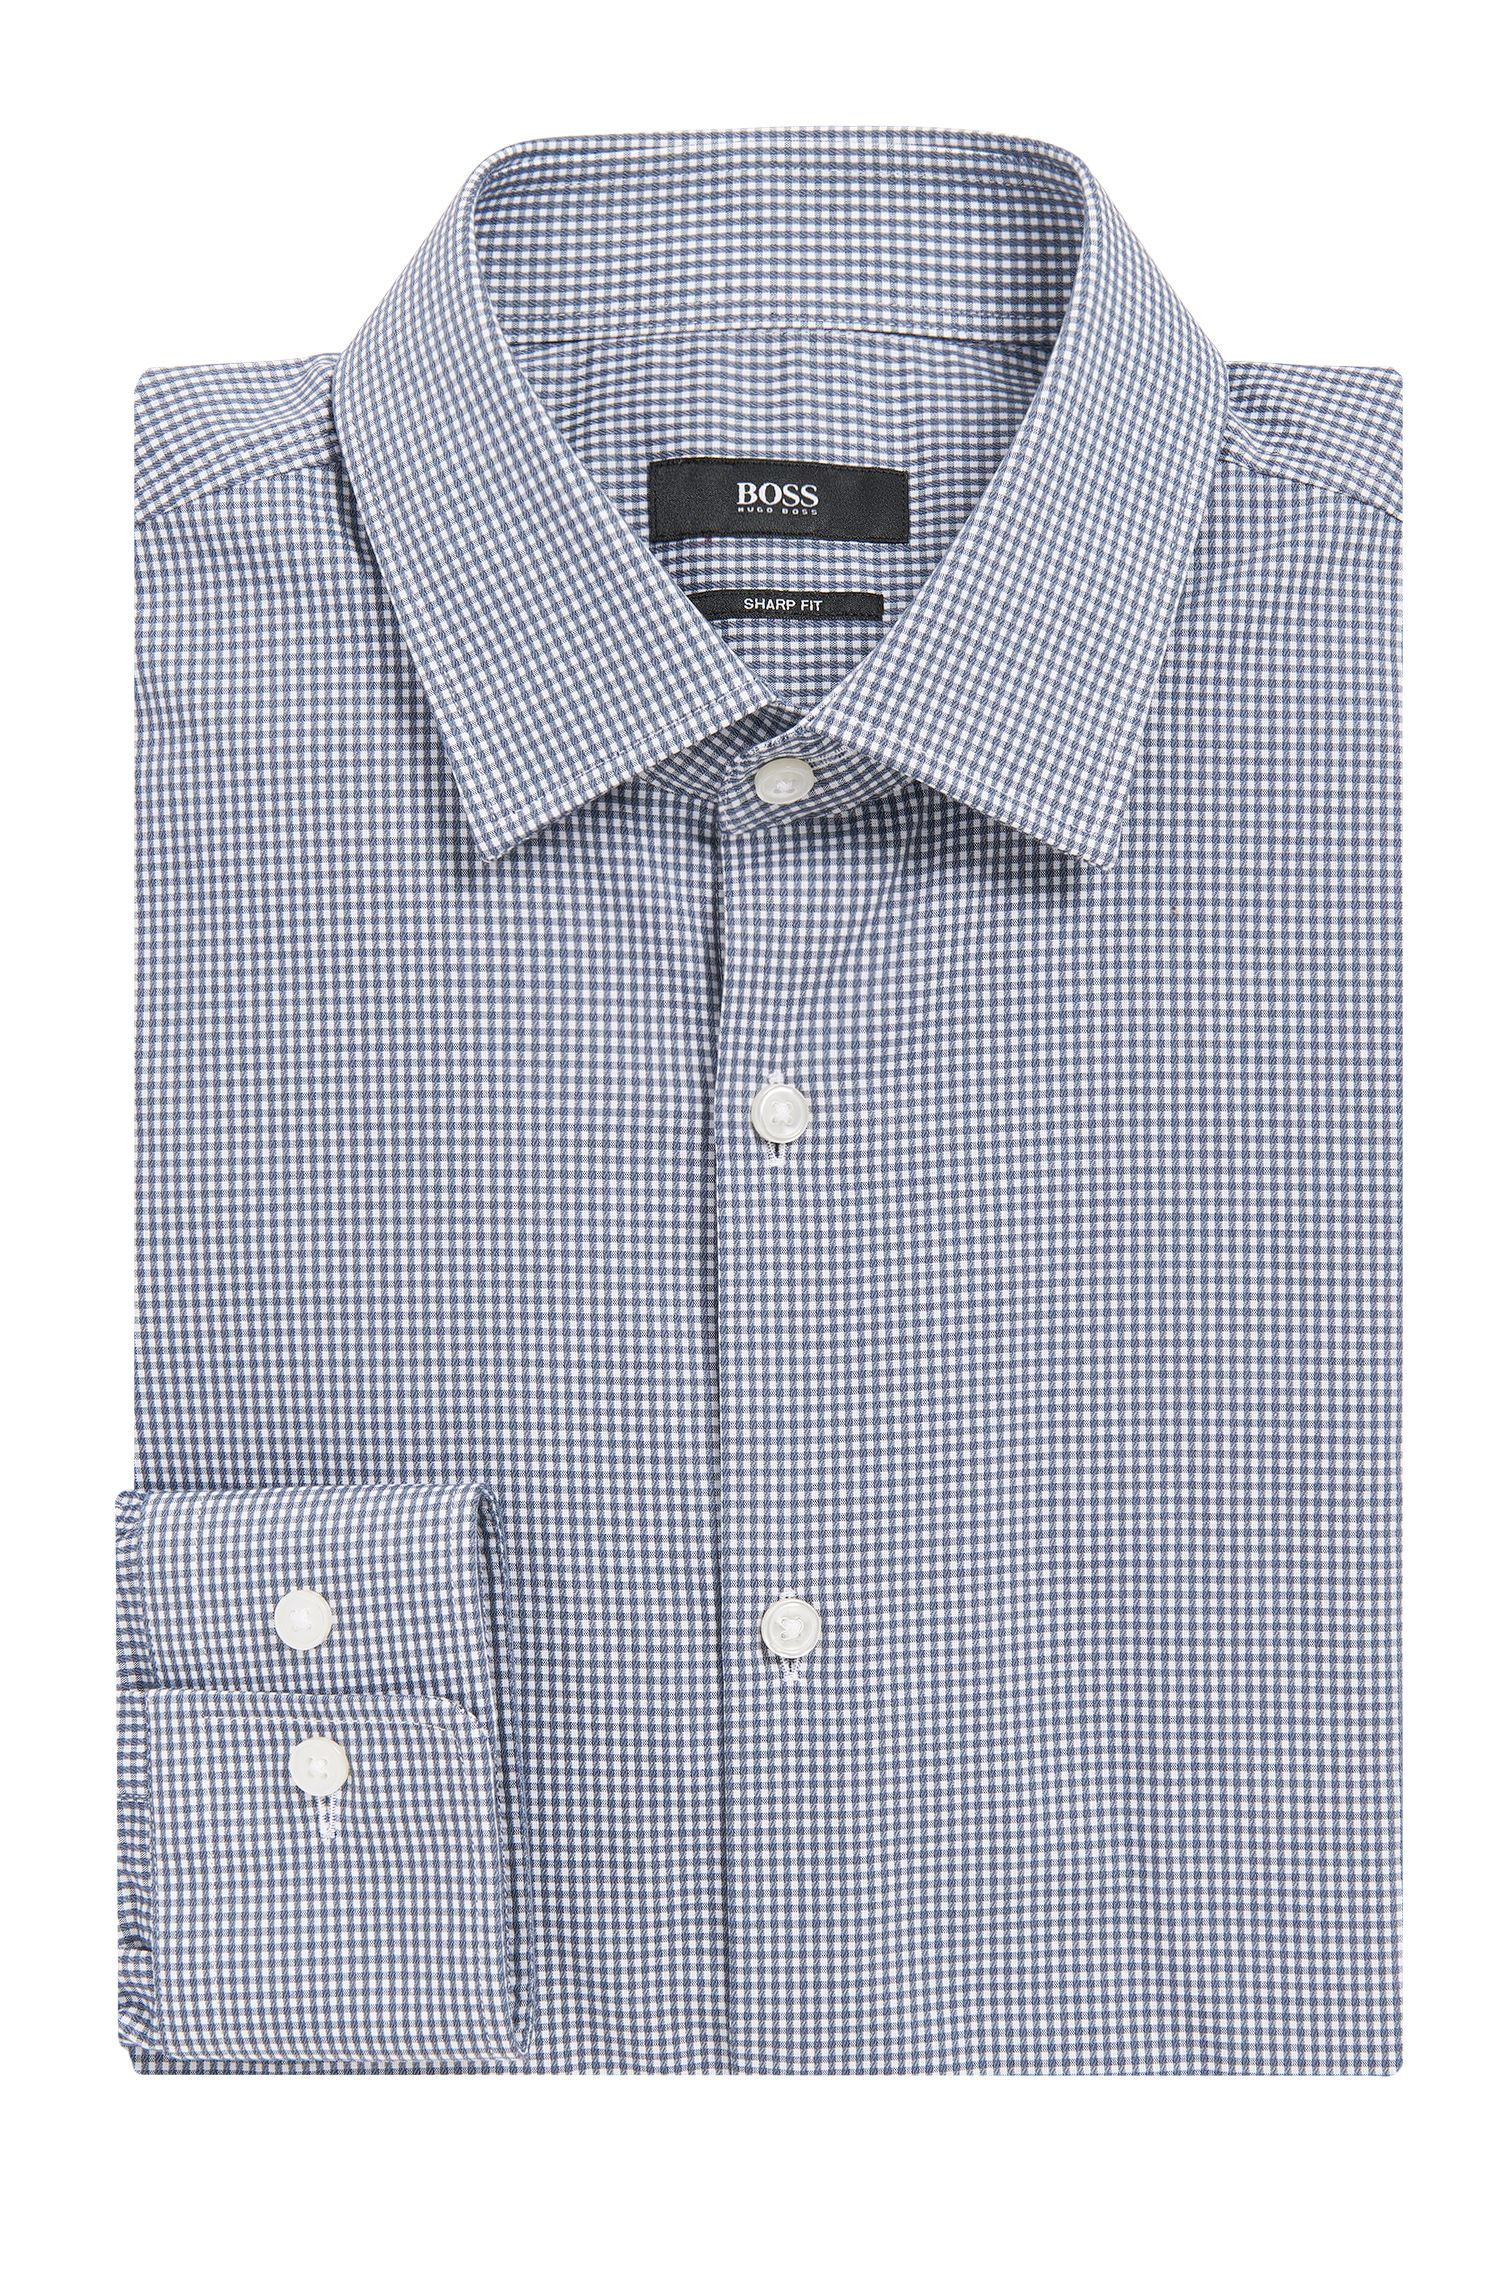 Gingham Cotton Dress Shirt, Sharp Fit | Marley US